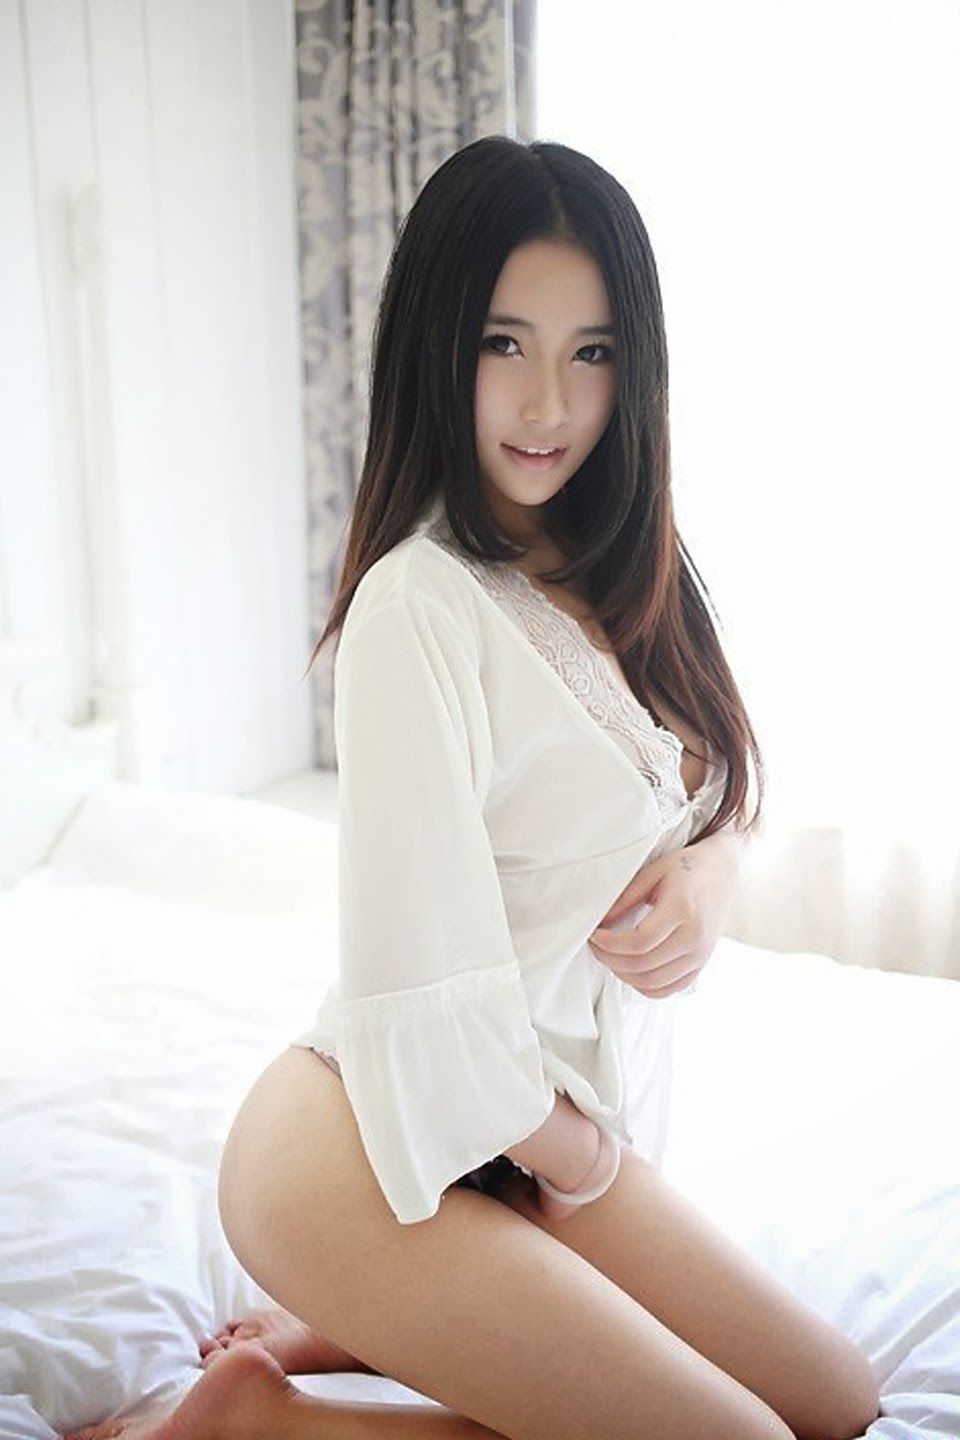 Big Boob Lingerie Sexy Lingerie Asian Girl Hot Asian Girl Sexy Asian Girl Cosplay Girl